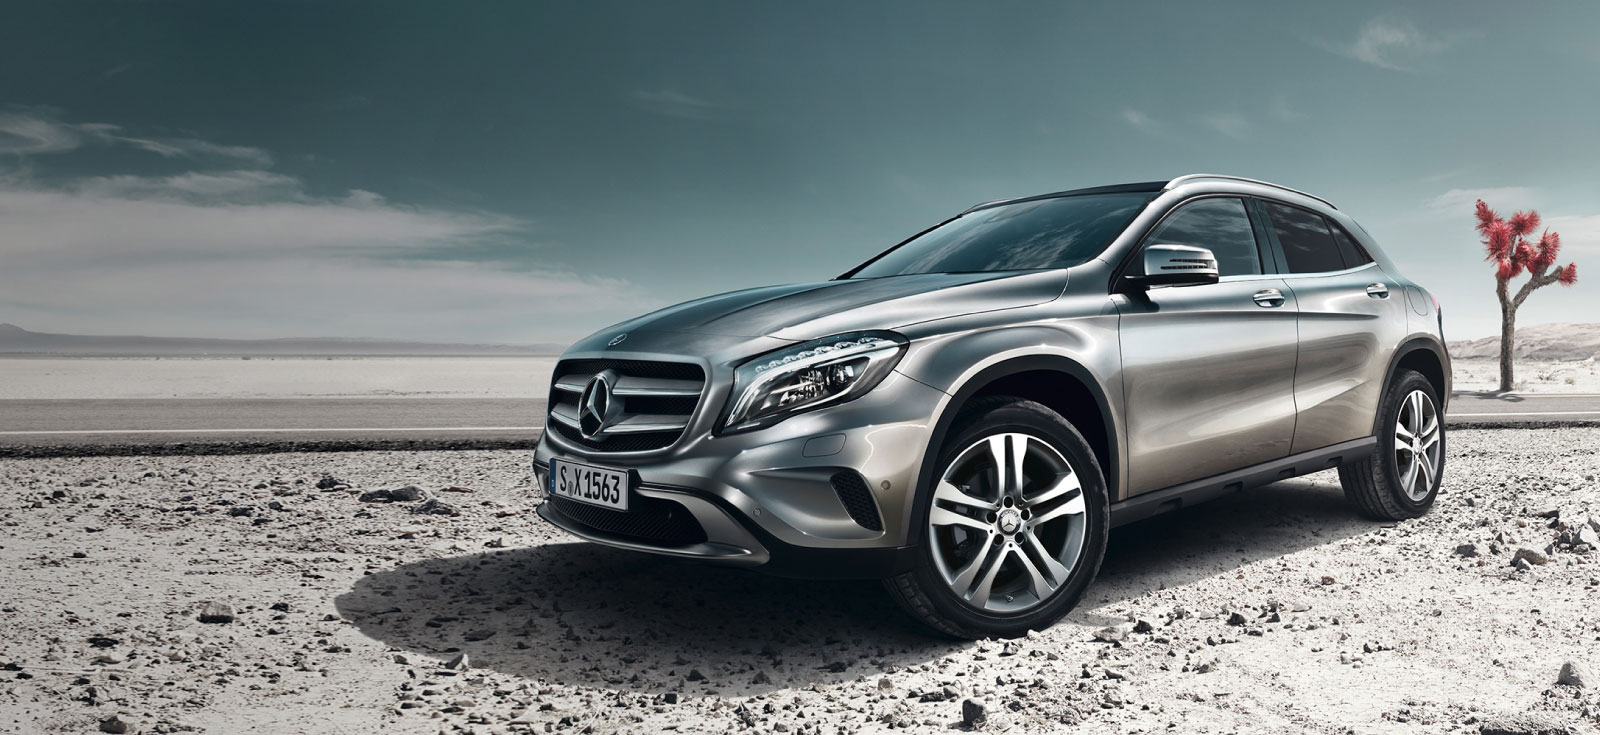 Mercedes benz gla deals new mercedes benz gla cars for for Mercedes benz gla for sale